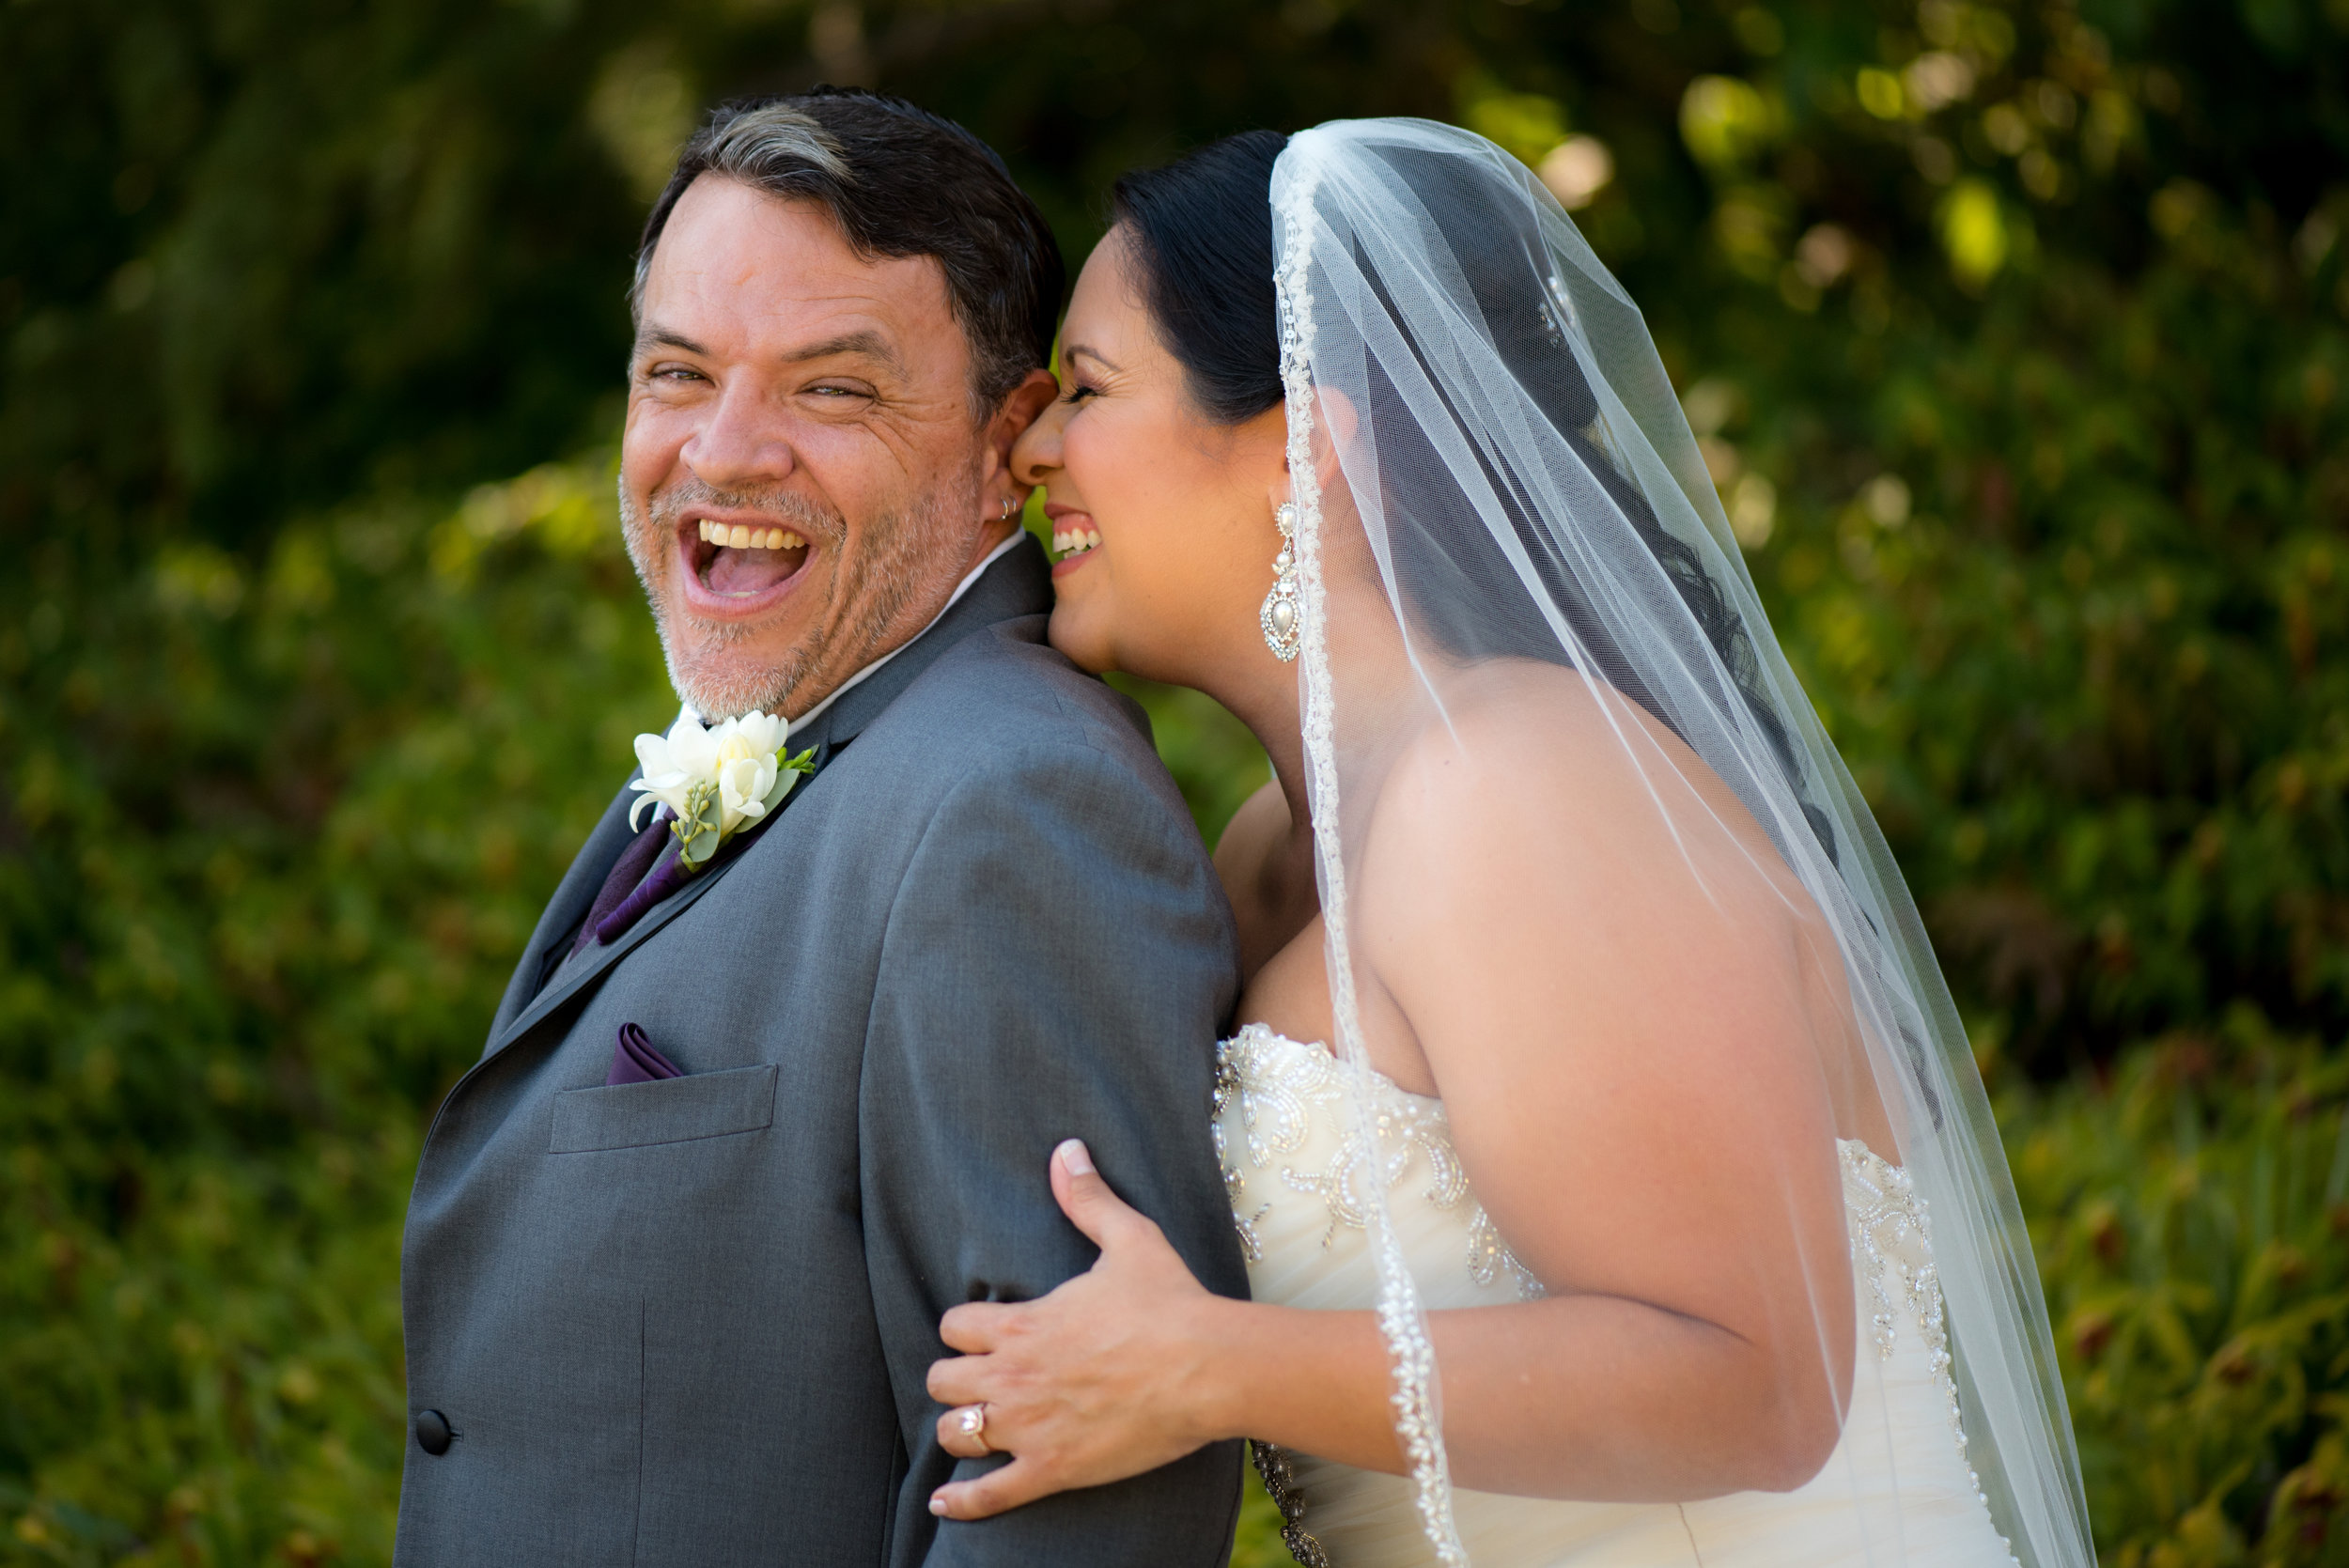 Fun wedding photo of bride and groom during wedding at Monte Verde Inn in Foresthill California.